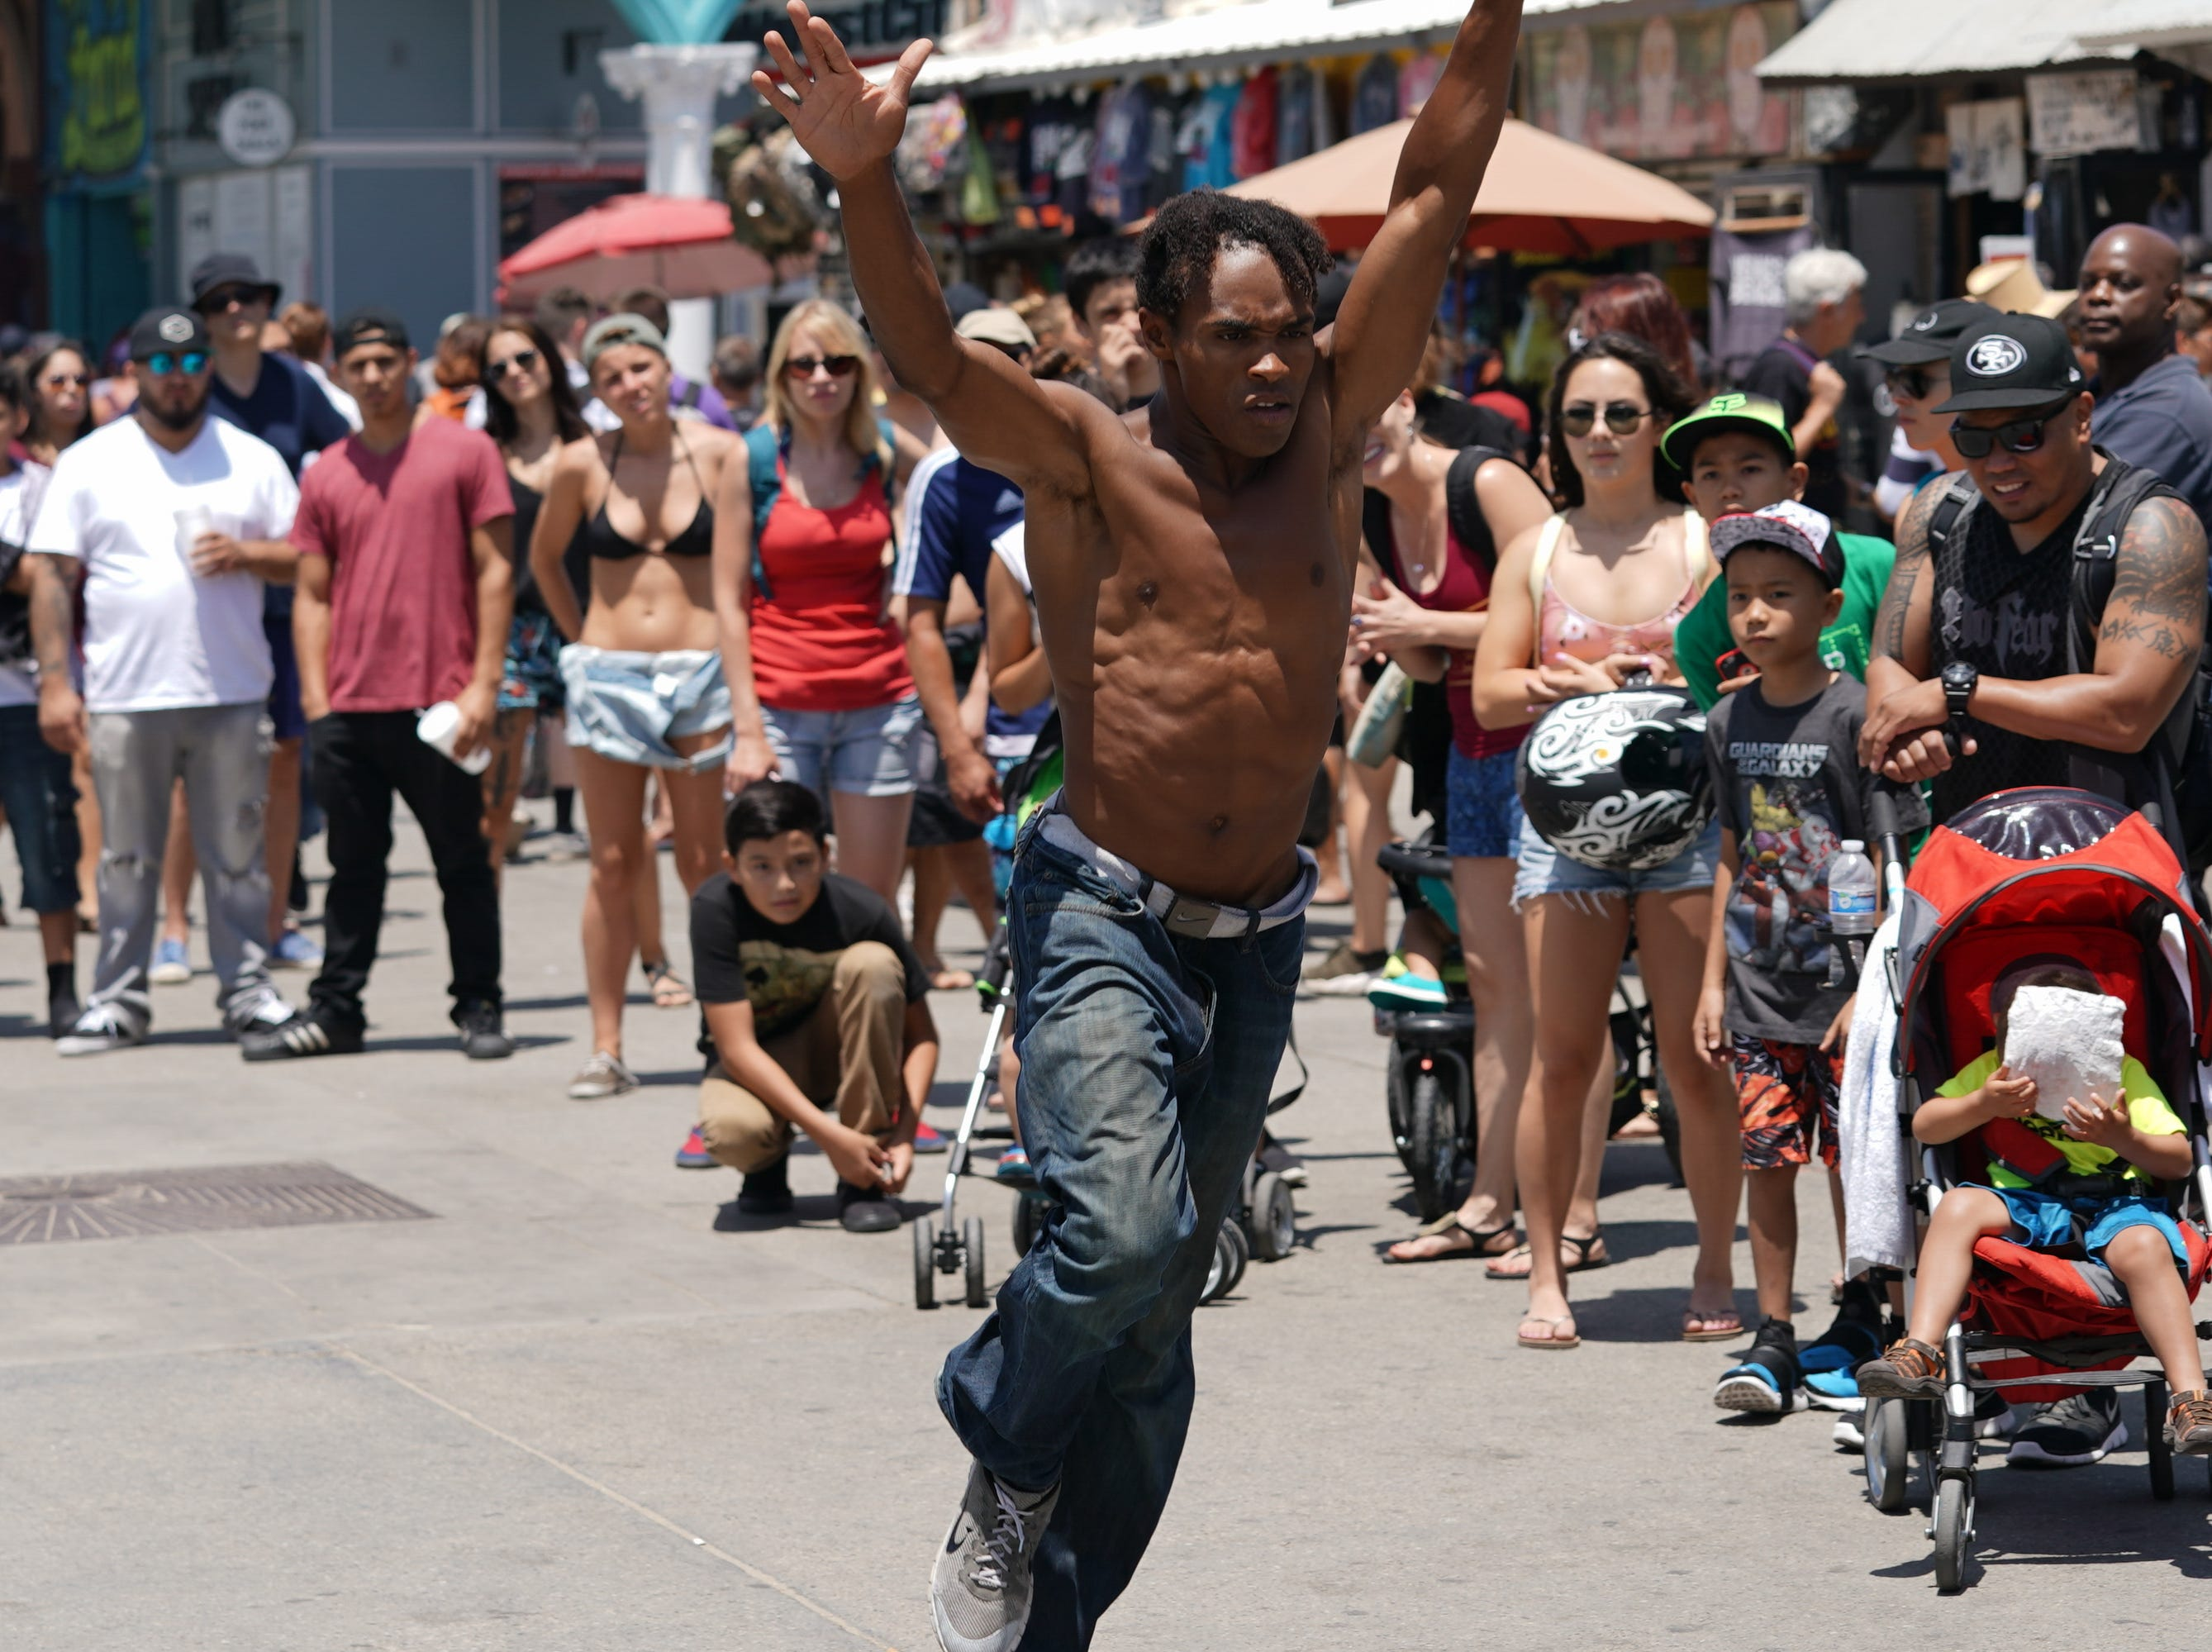 A street performed prepares to do a flip in Venice Beach.